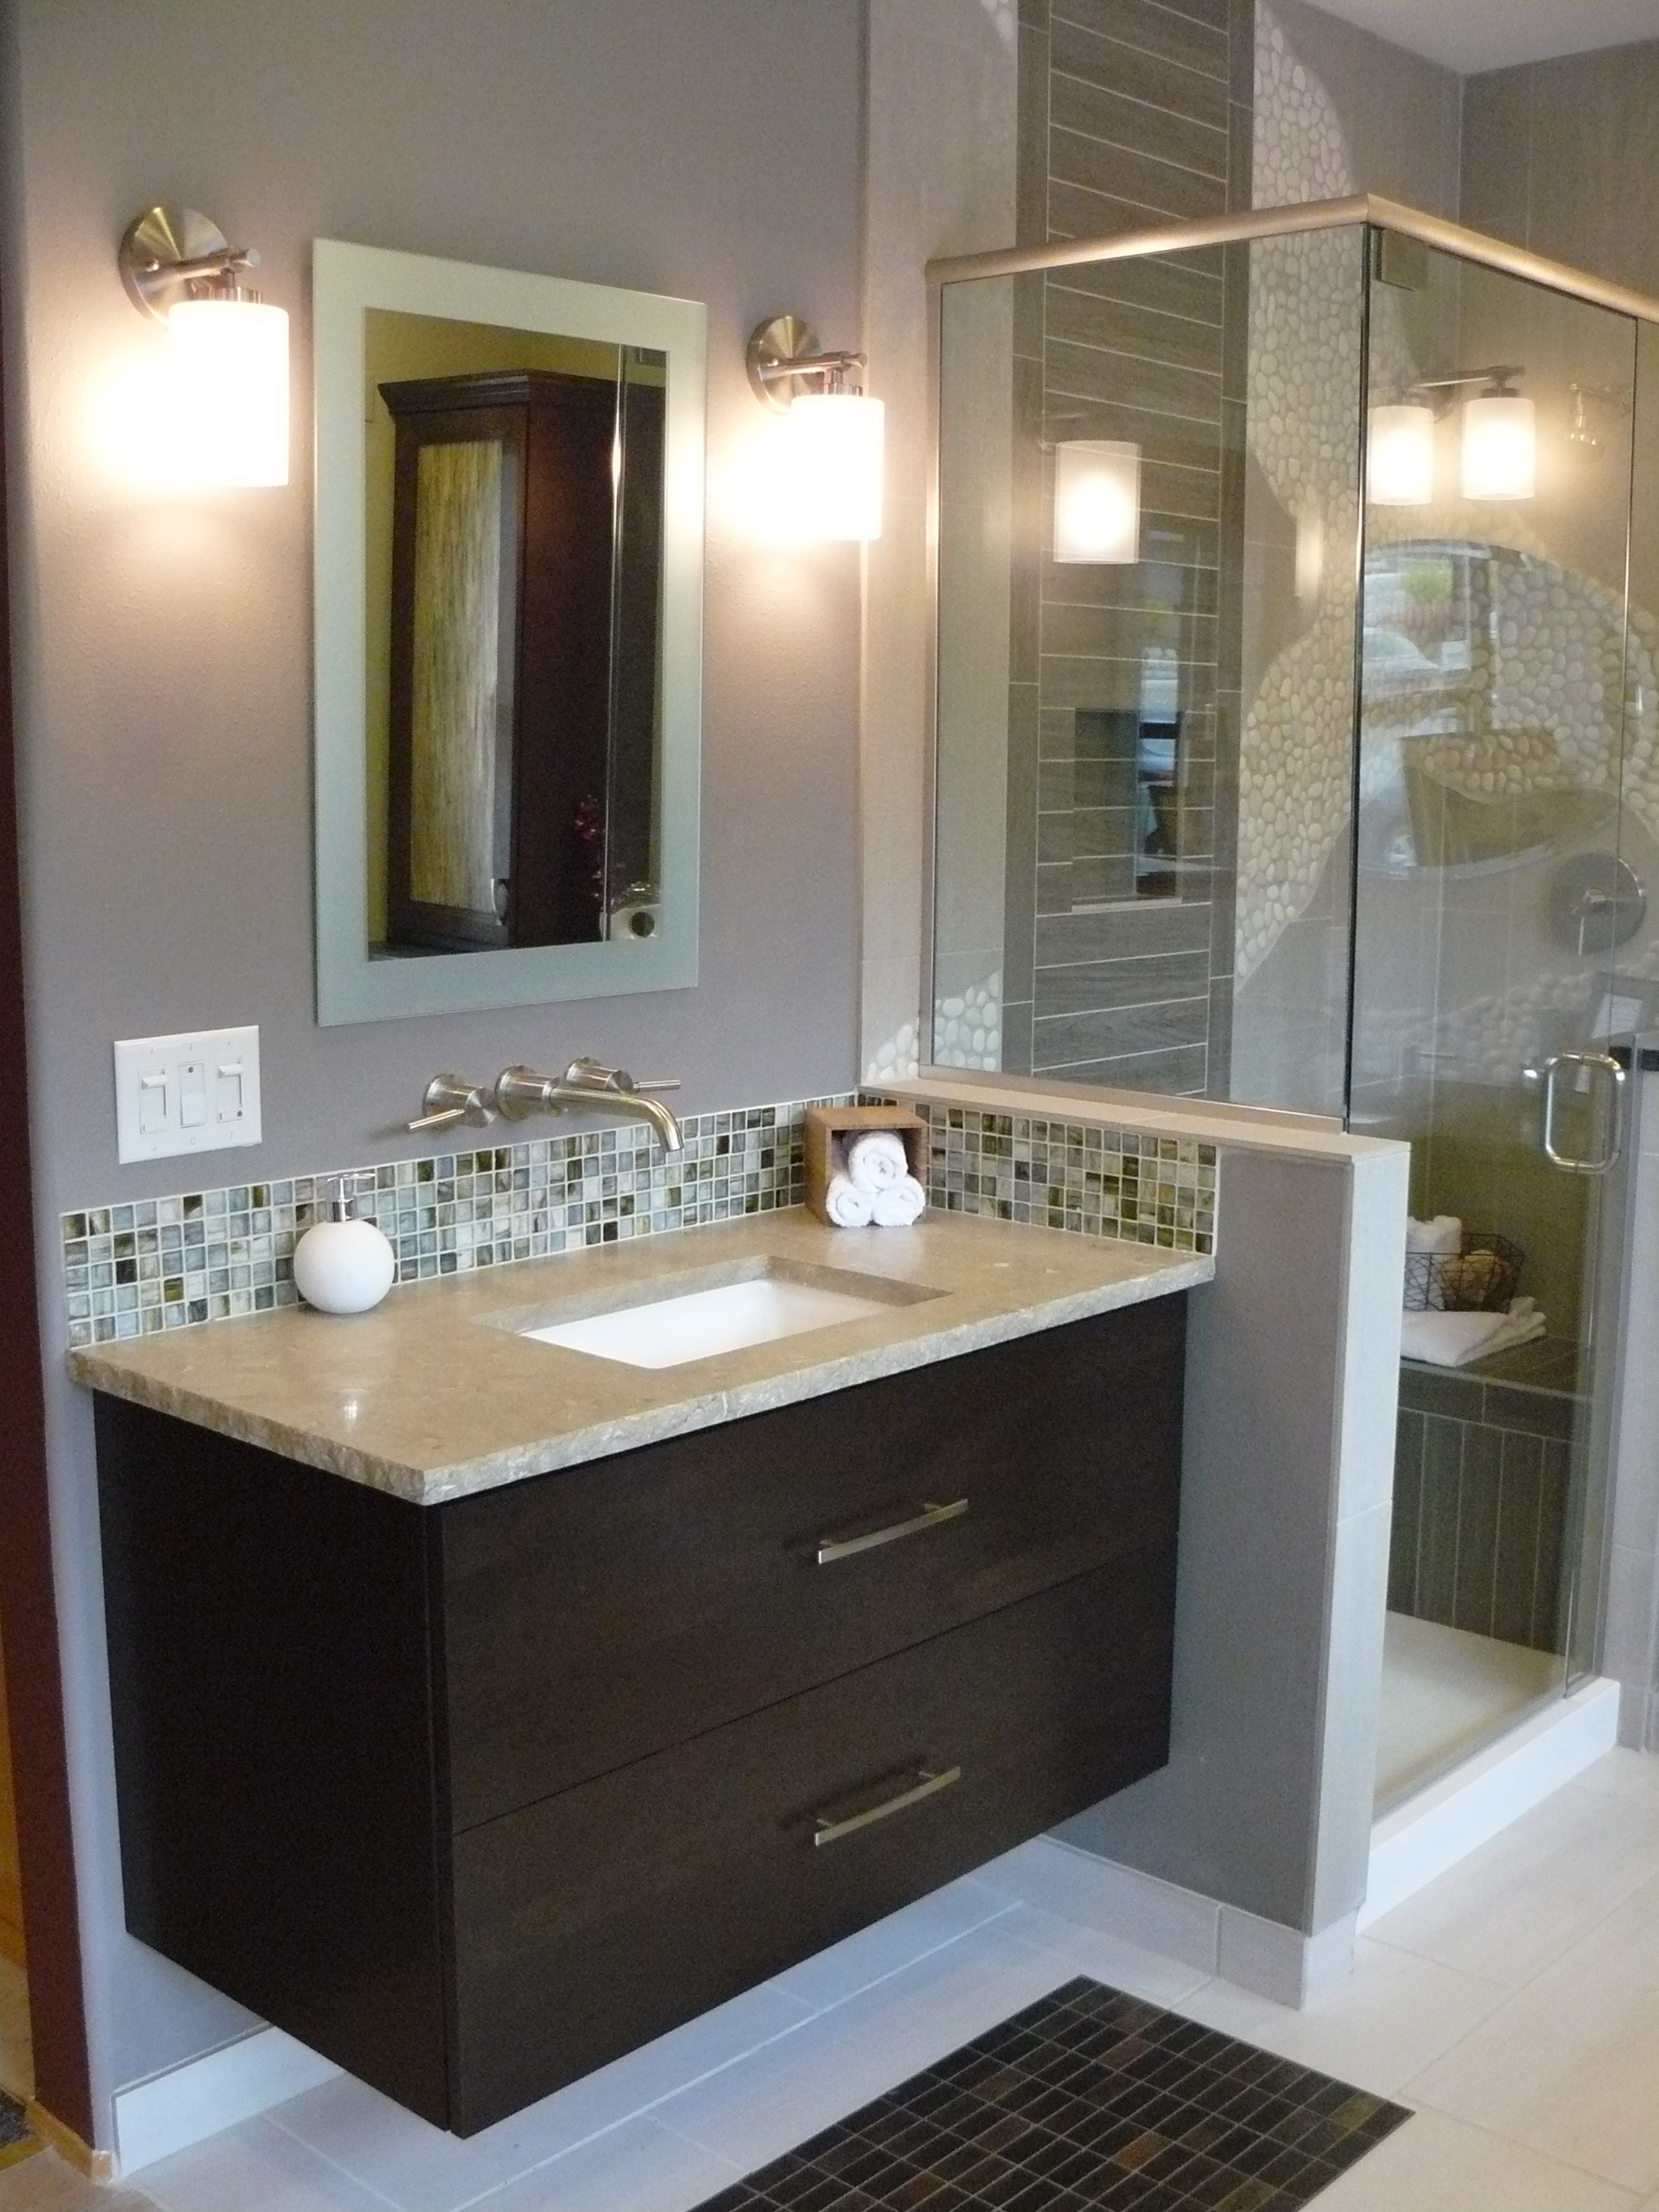 furniture with avaz midl international unique vanities seating bathroom s and area vanity sitting